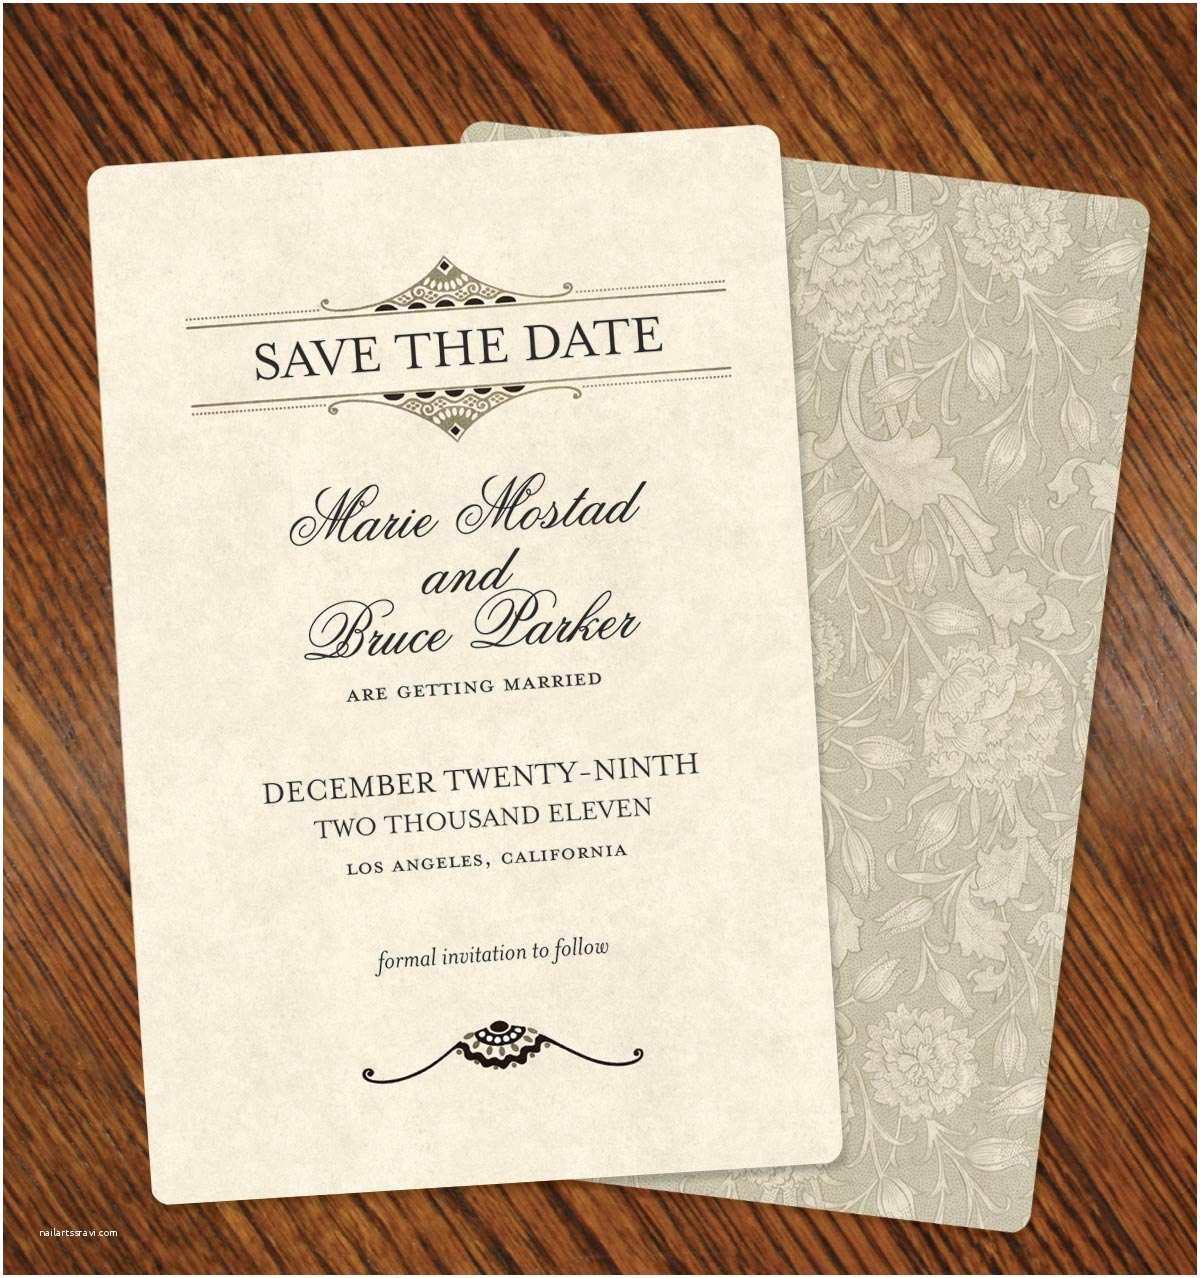 Save the Date Wedding Invitations Nice Floral Card Background Decorations Printable